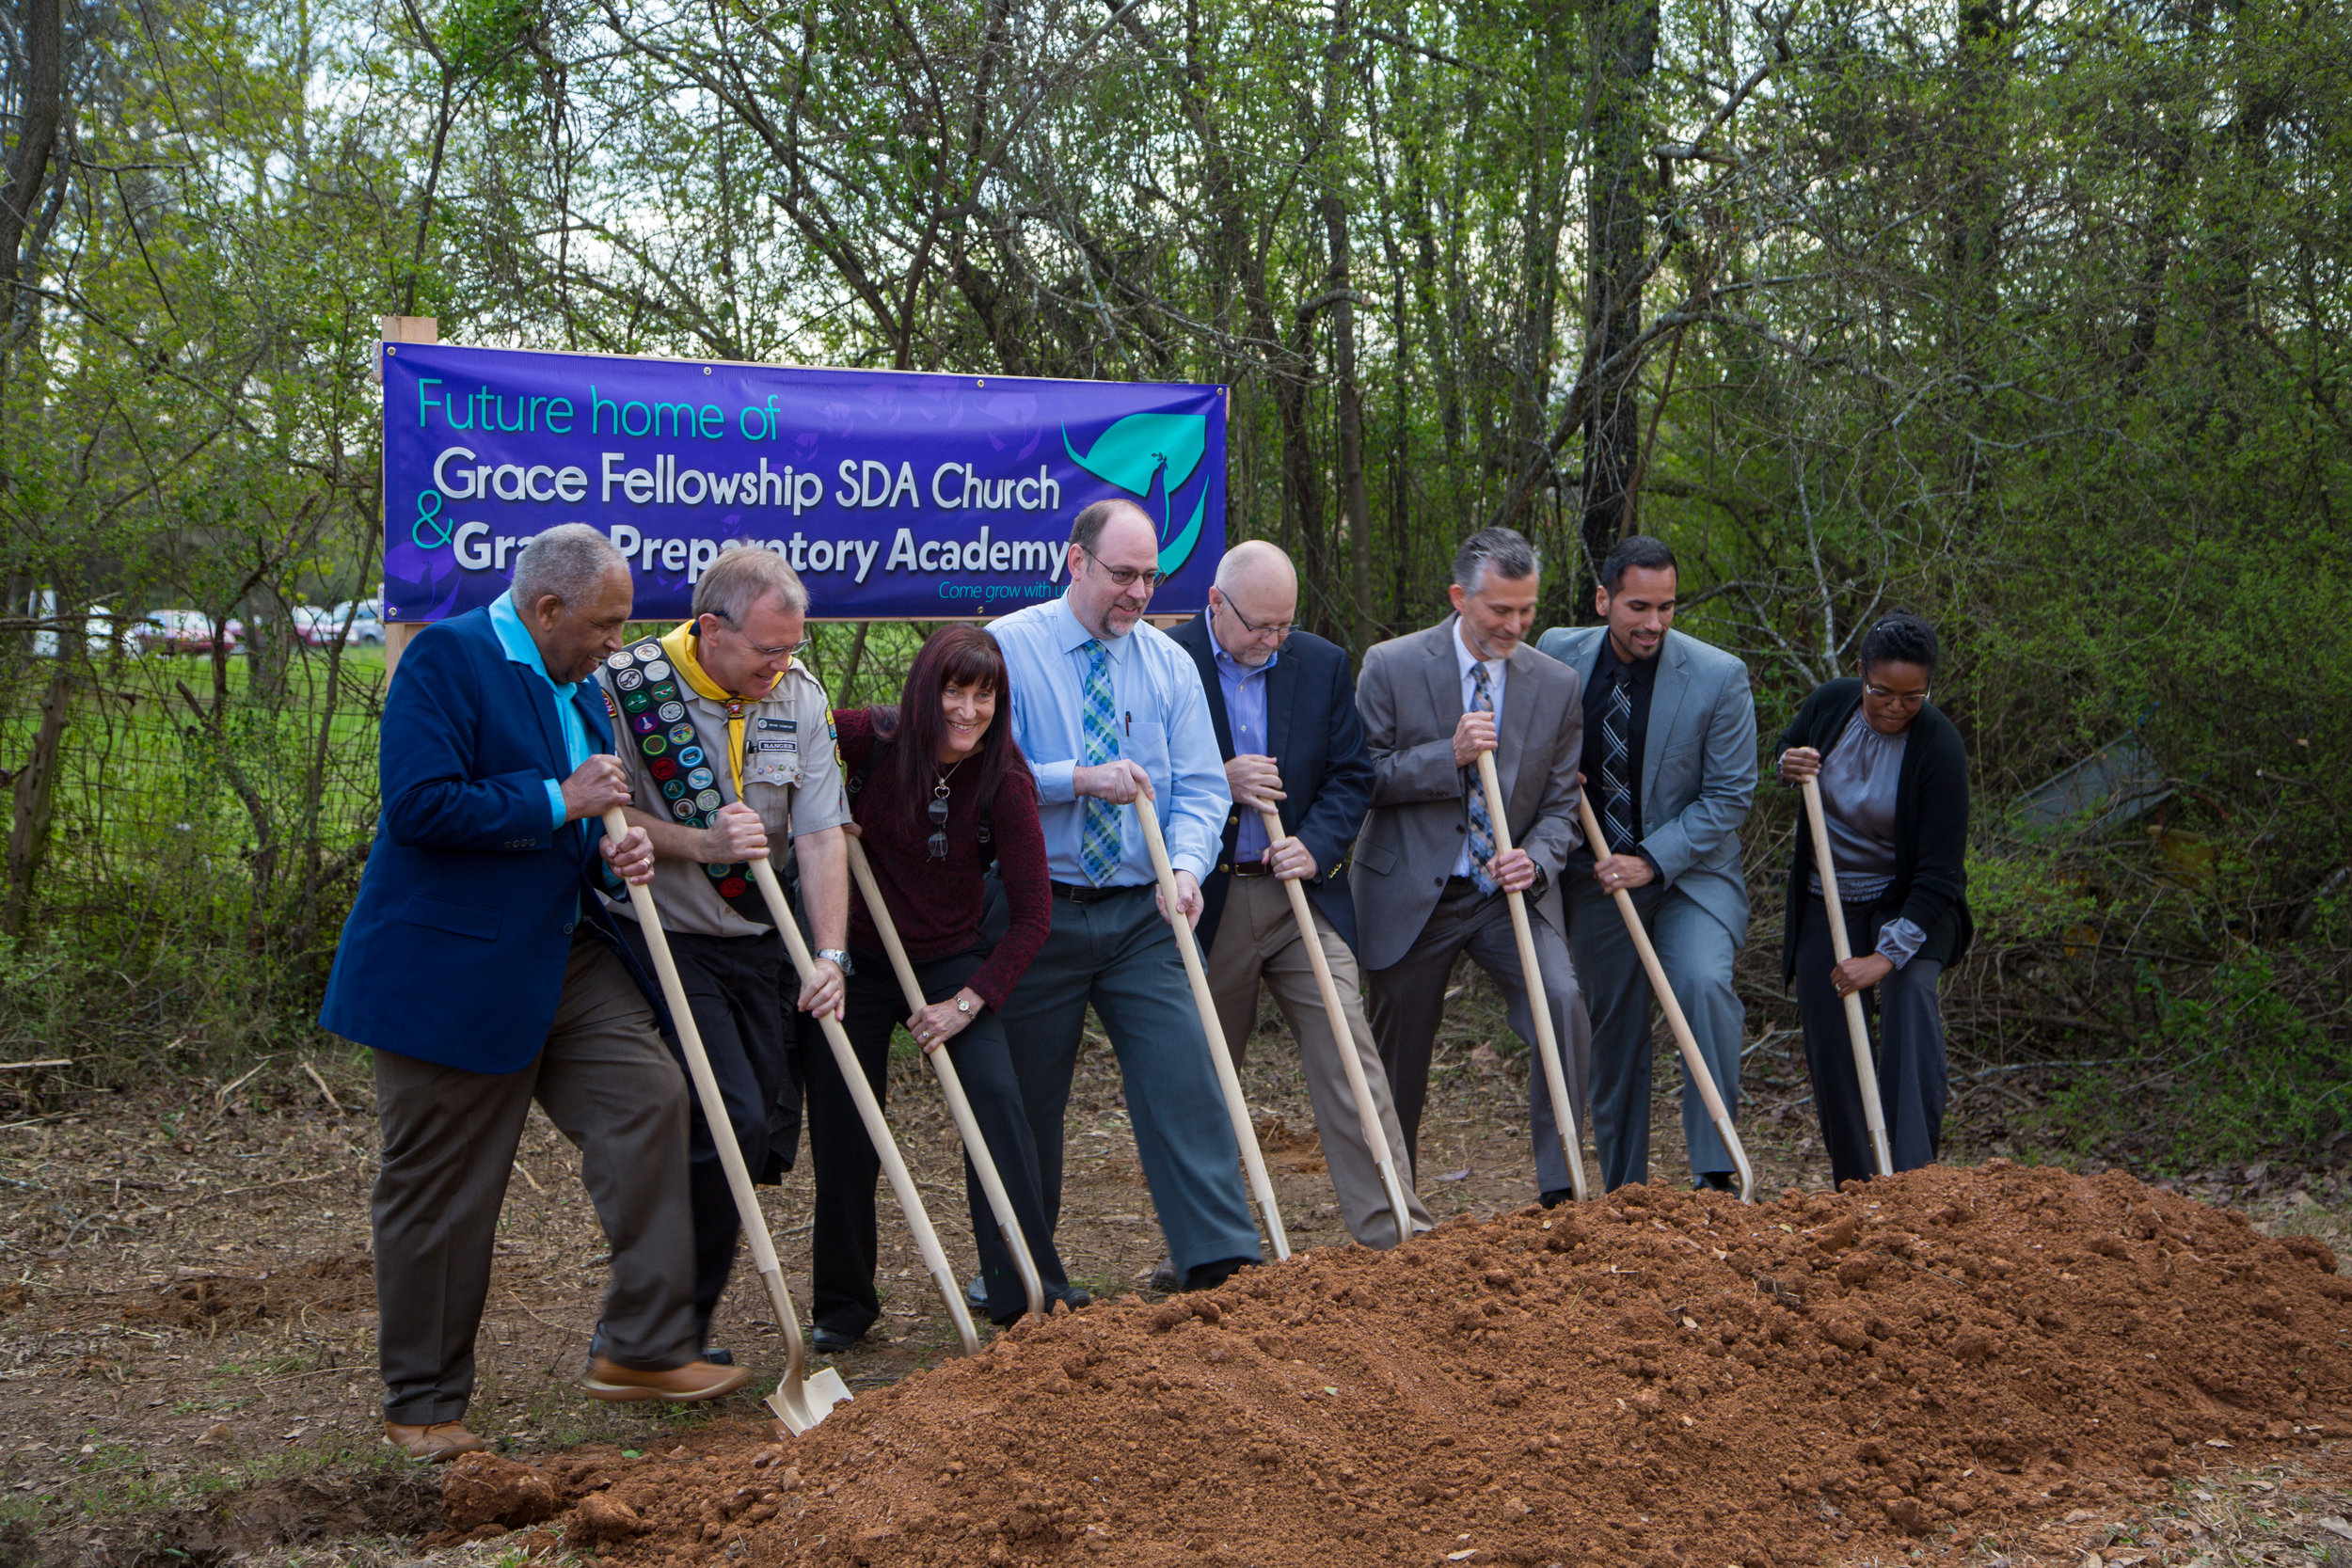 Participating in the groundbreaking ceremony were Winton Forde Sr. (left), local elder; Wayne Thompson, local elder and construction coordinator; Tamara Libonati, assoc. director for early childhood education of the southern union; Martin Fancher, exec. secretary of gulf states; Stan Hobbs, VP of education of gulf states; Thom Lopez, local elder; Jaime Pombo, pastor; Shushannah Smith, school board chairman.